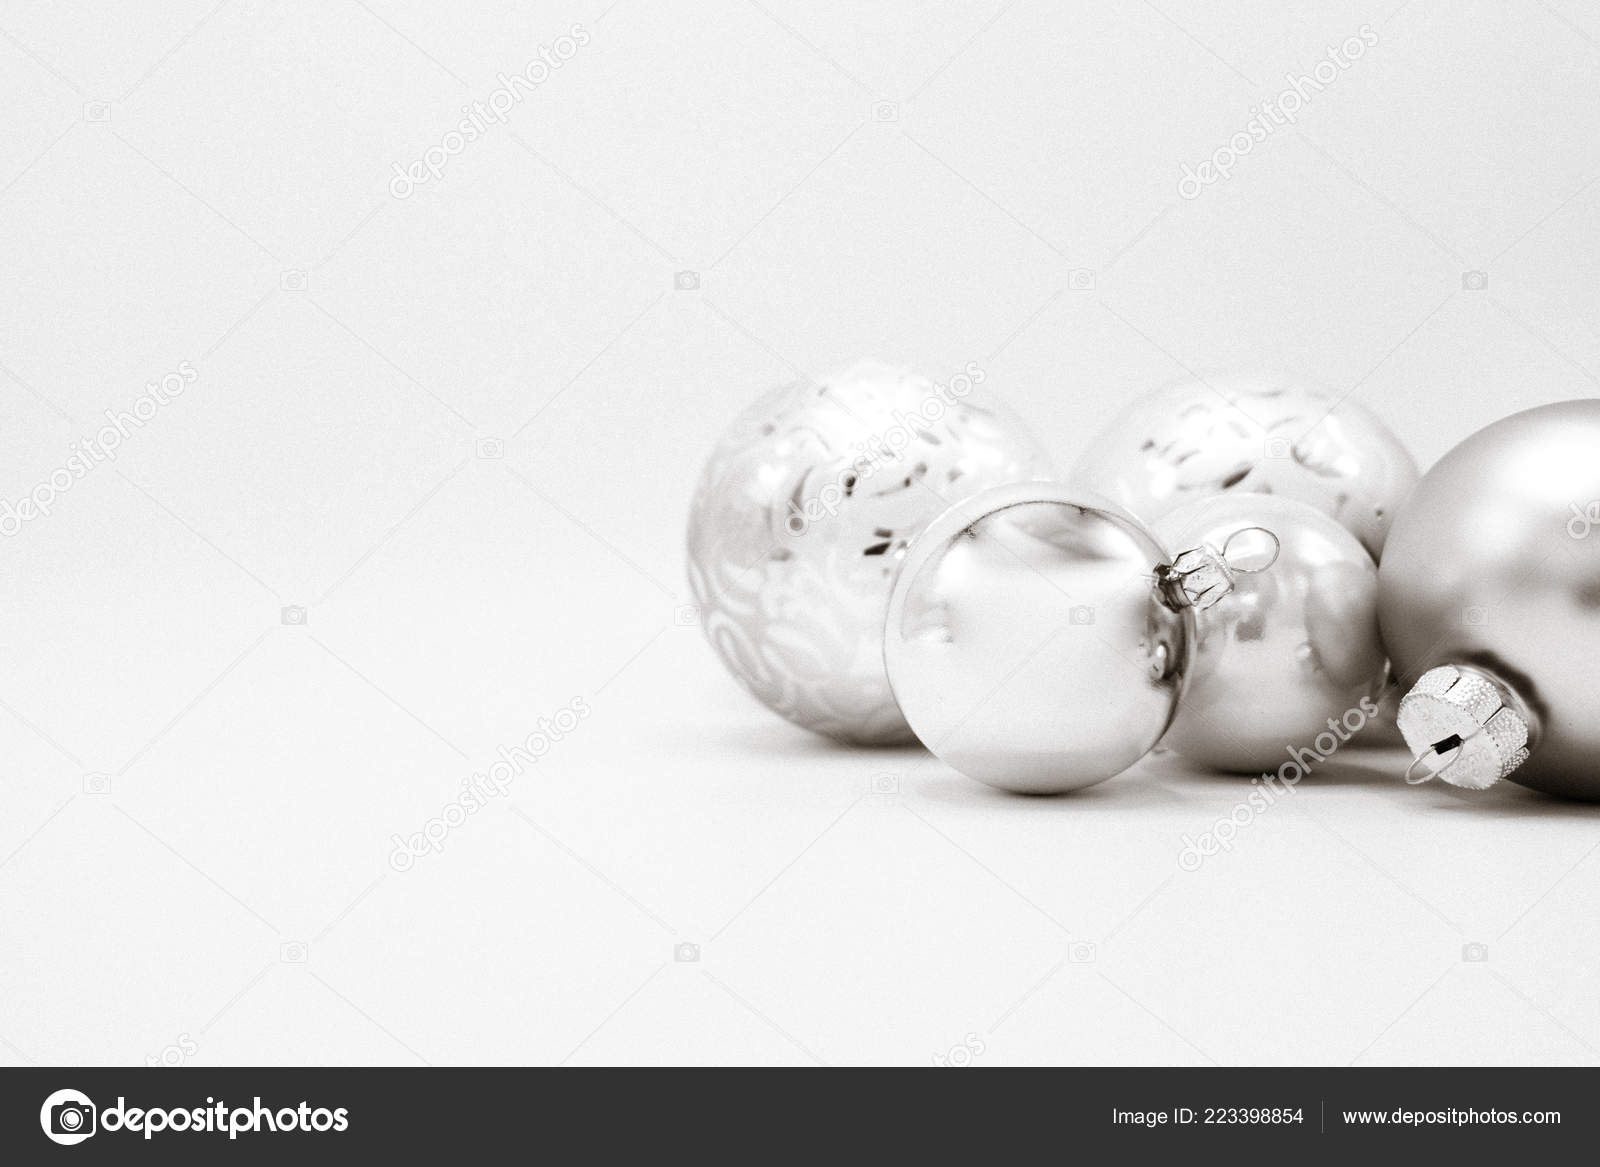 Monochrome Elegant Christmas Wallpaper Background Tree Decorations